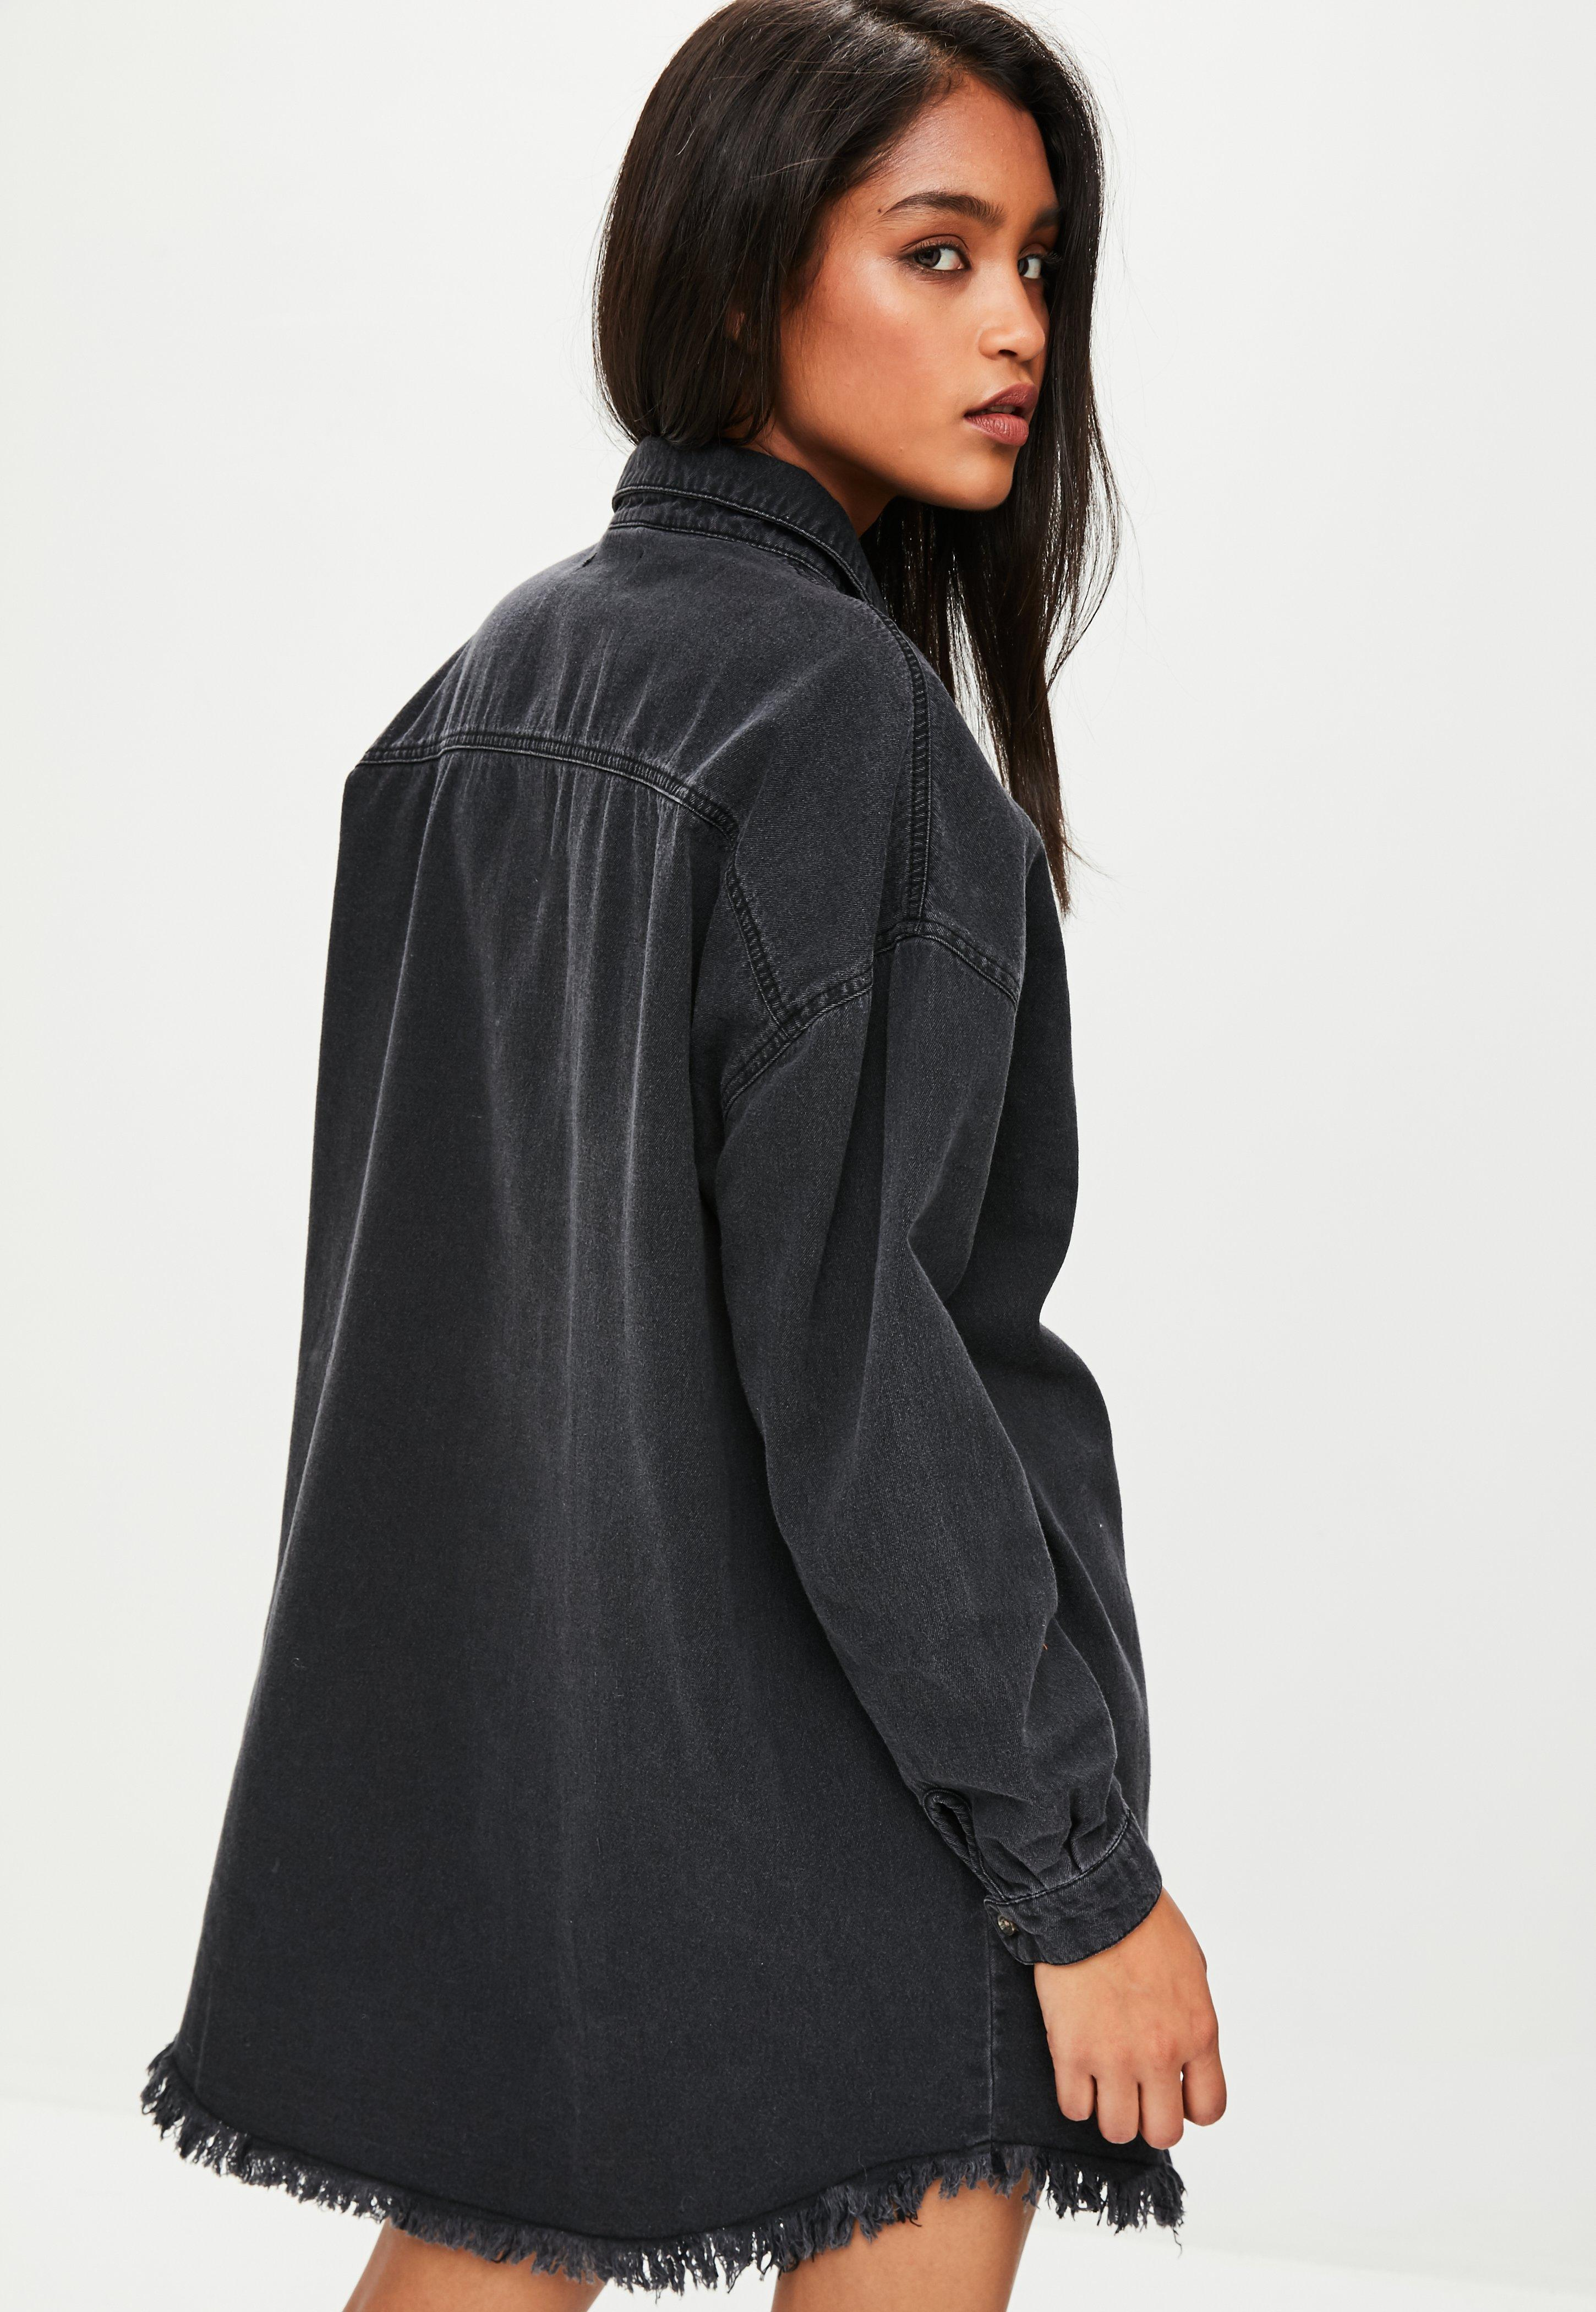 a13c630f4bc Lyst - Missguided Black Oversized Denim Shirt Dress in Black